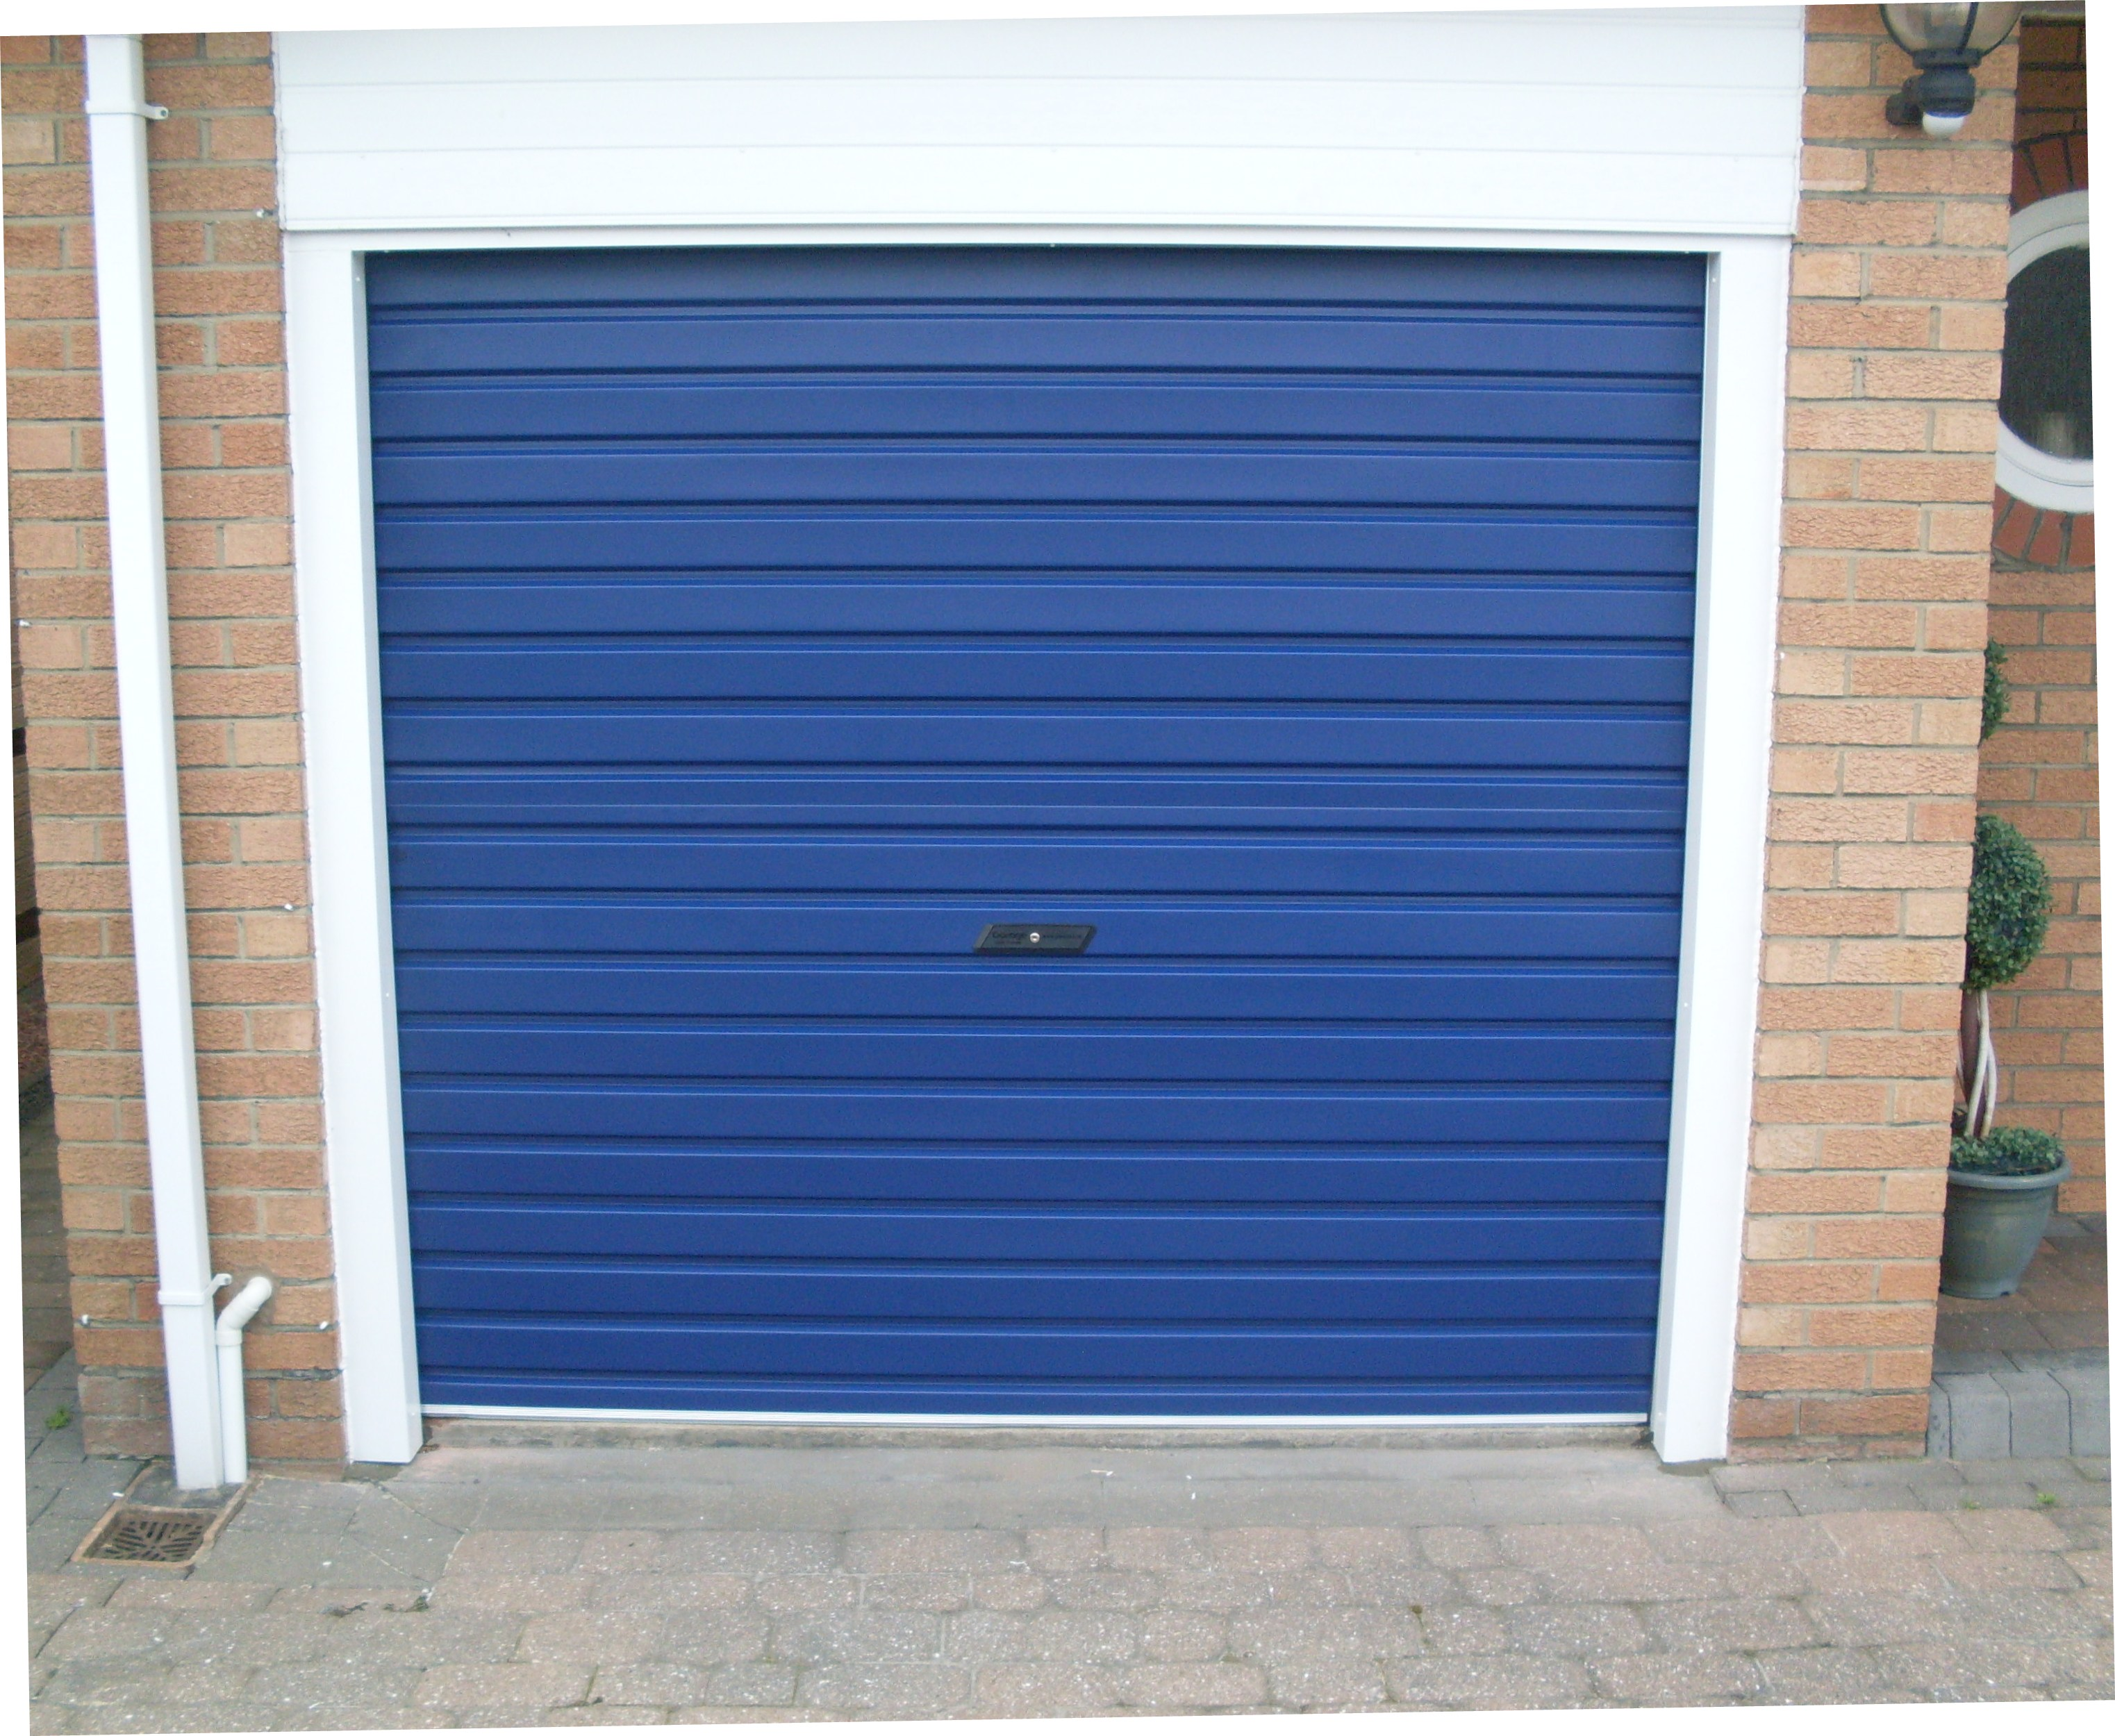 va contact king repair gallery stafford woodbrige garage installation door today us